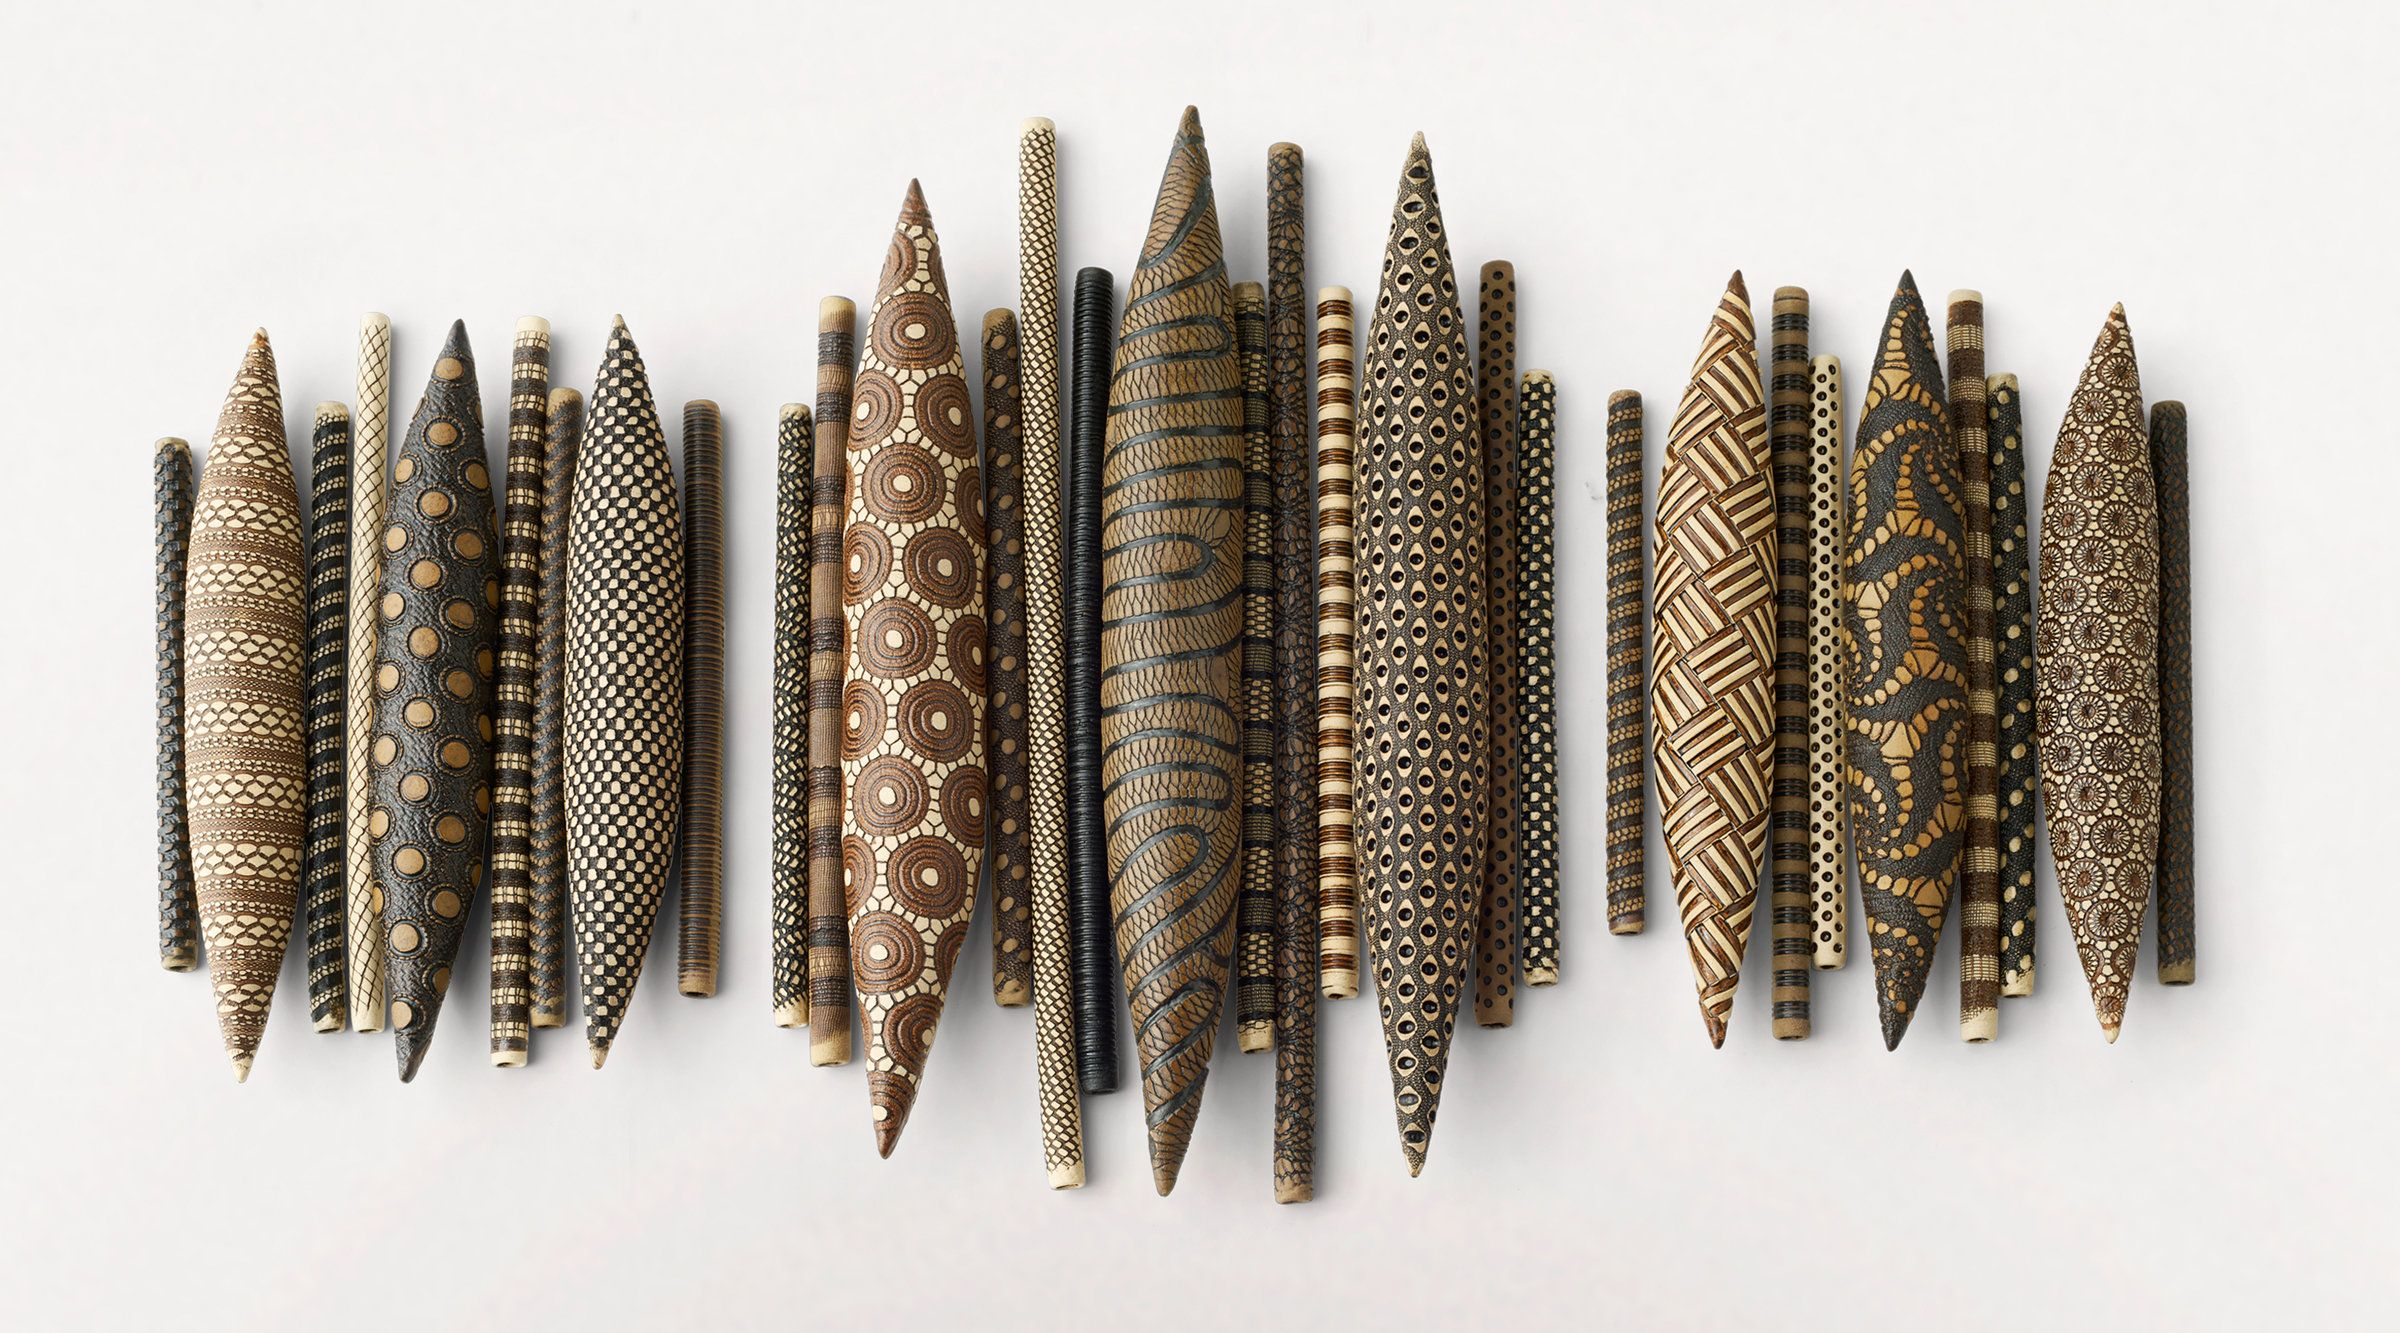 Domestic Markings: Balance by Kelly Jean Ohl. Intricate textures and earthy colors combine in this striking sculptural installation. A variety of individual